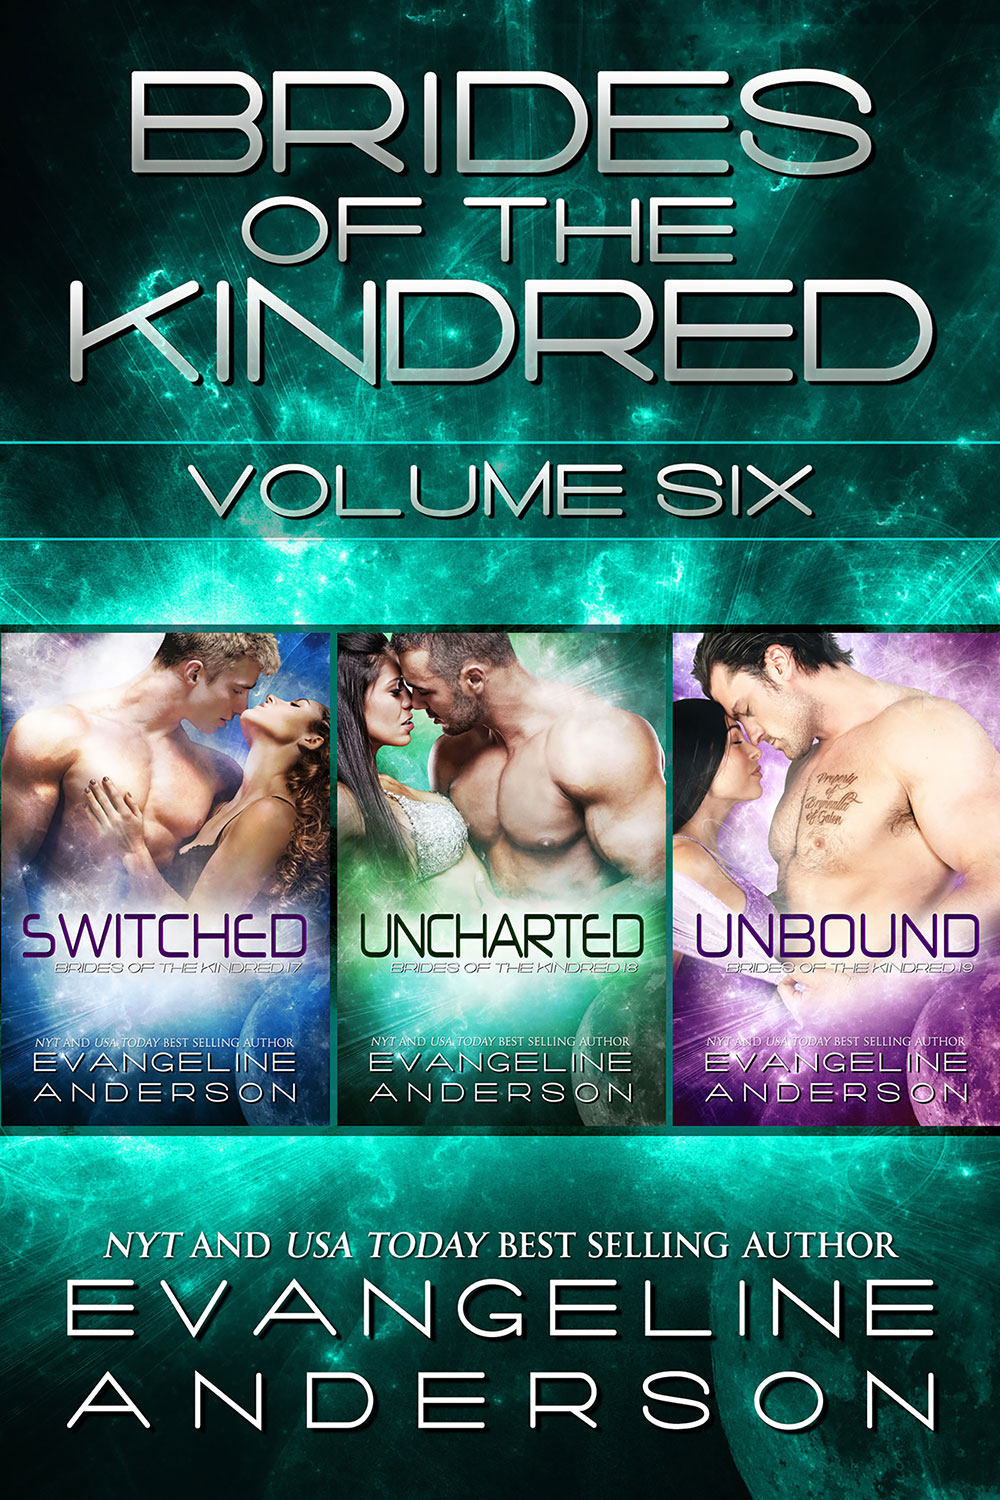 Brides of the Kindred Volume Six